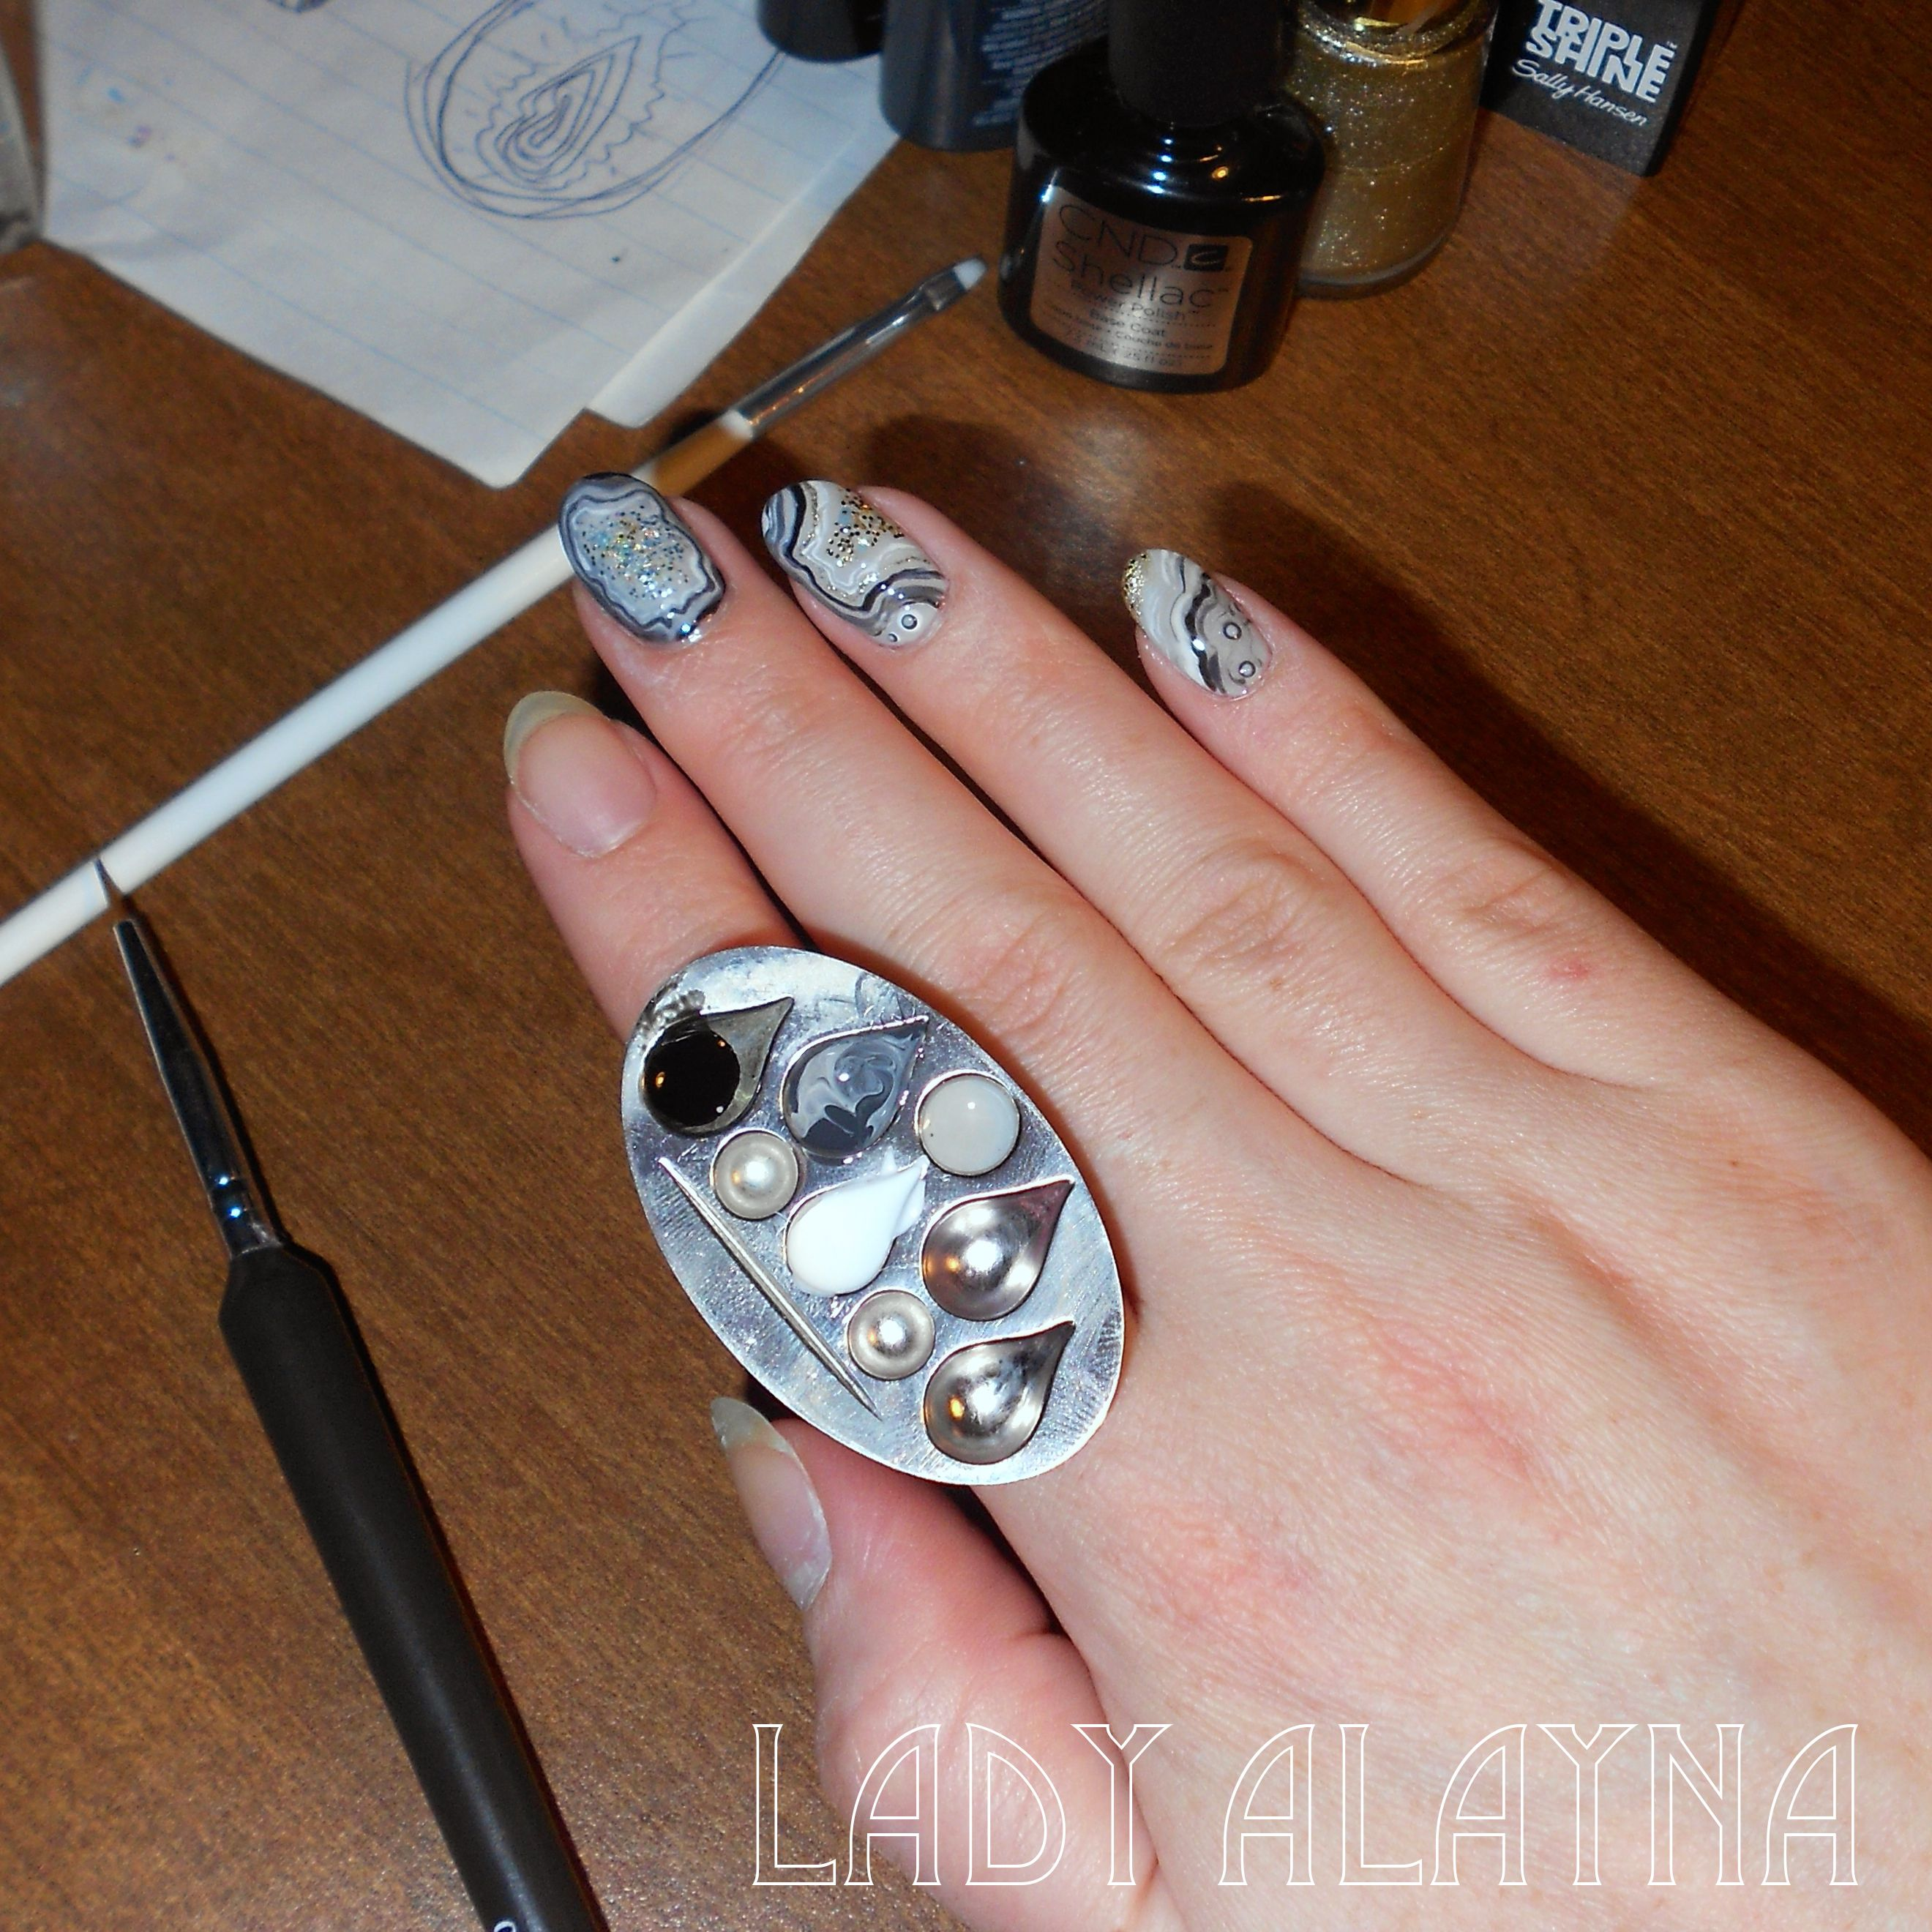 I Love My New Ring Thing From Empower Nail Art Using It Here To